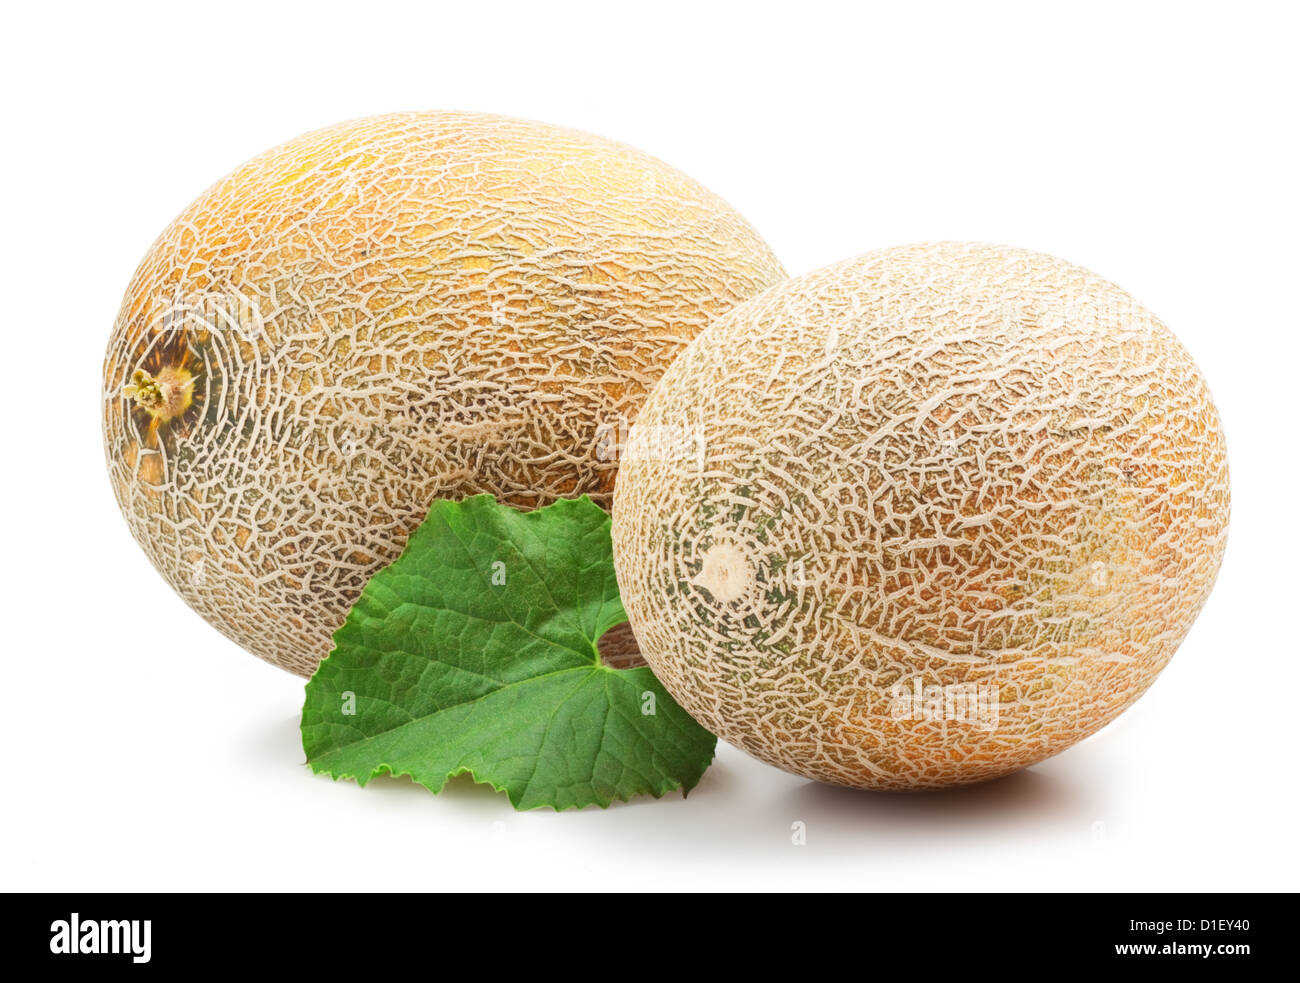 Ripe Melon On White Background Stock Photo Alamy The stem end of the melon should have a slight give, and. https www alamy com stock photo ripe melon on white background 52574368 html